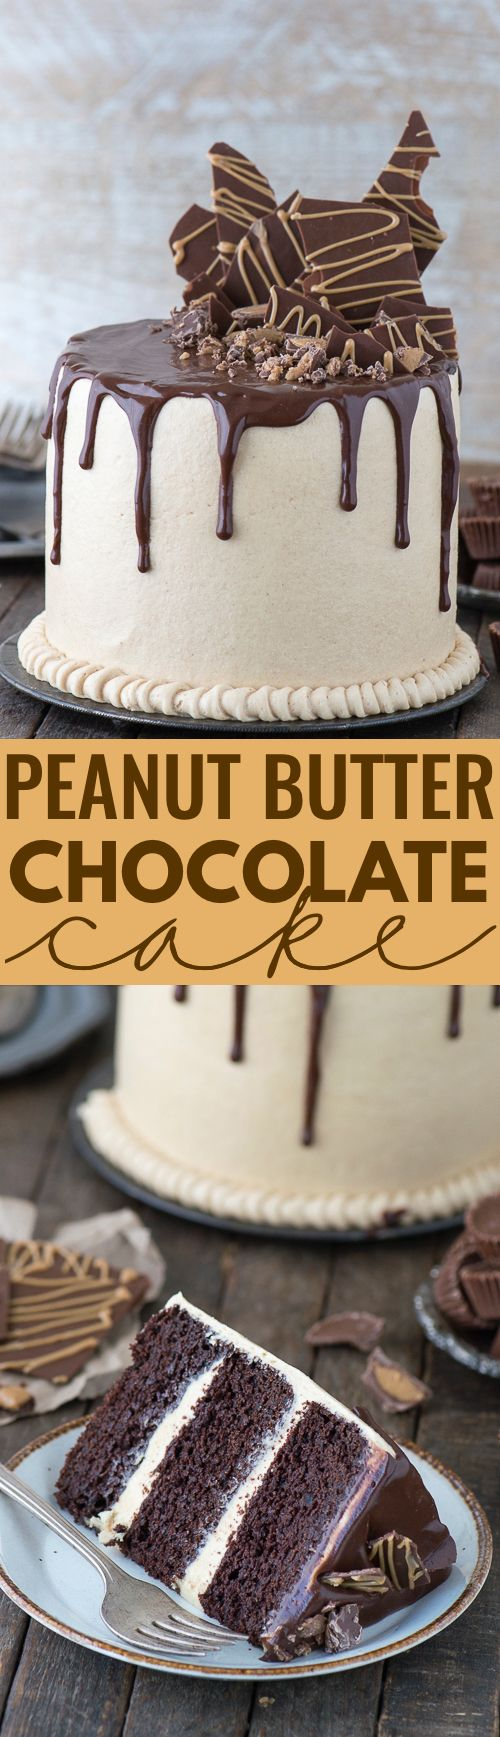 This peanut butter chocolate cake recipe is AMAZING! Chocolate cake paired with peanut butter buttercream and dripping with chocolate ganache.